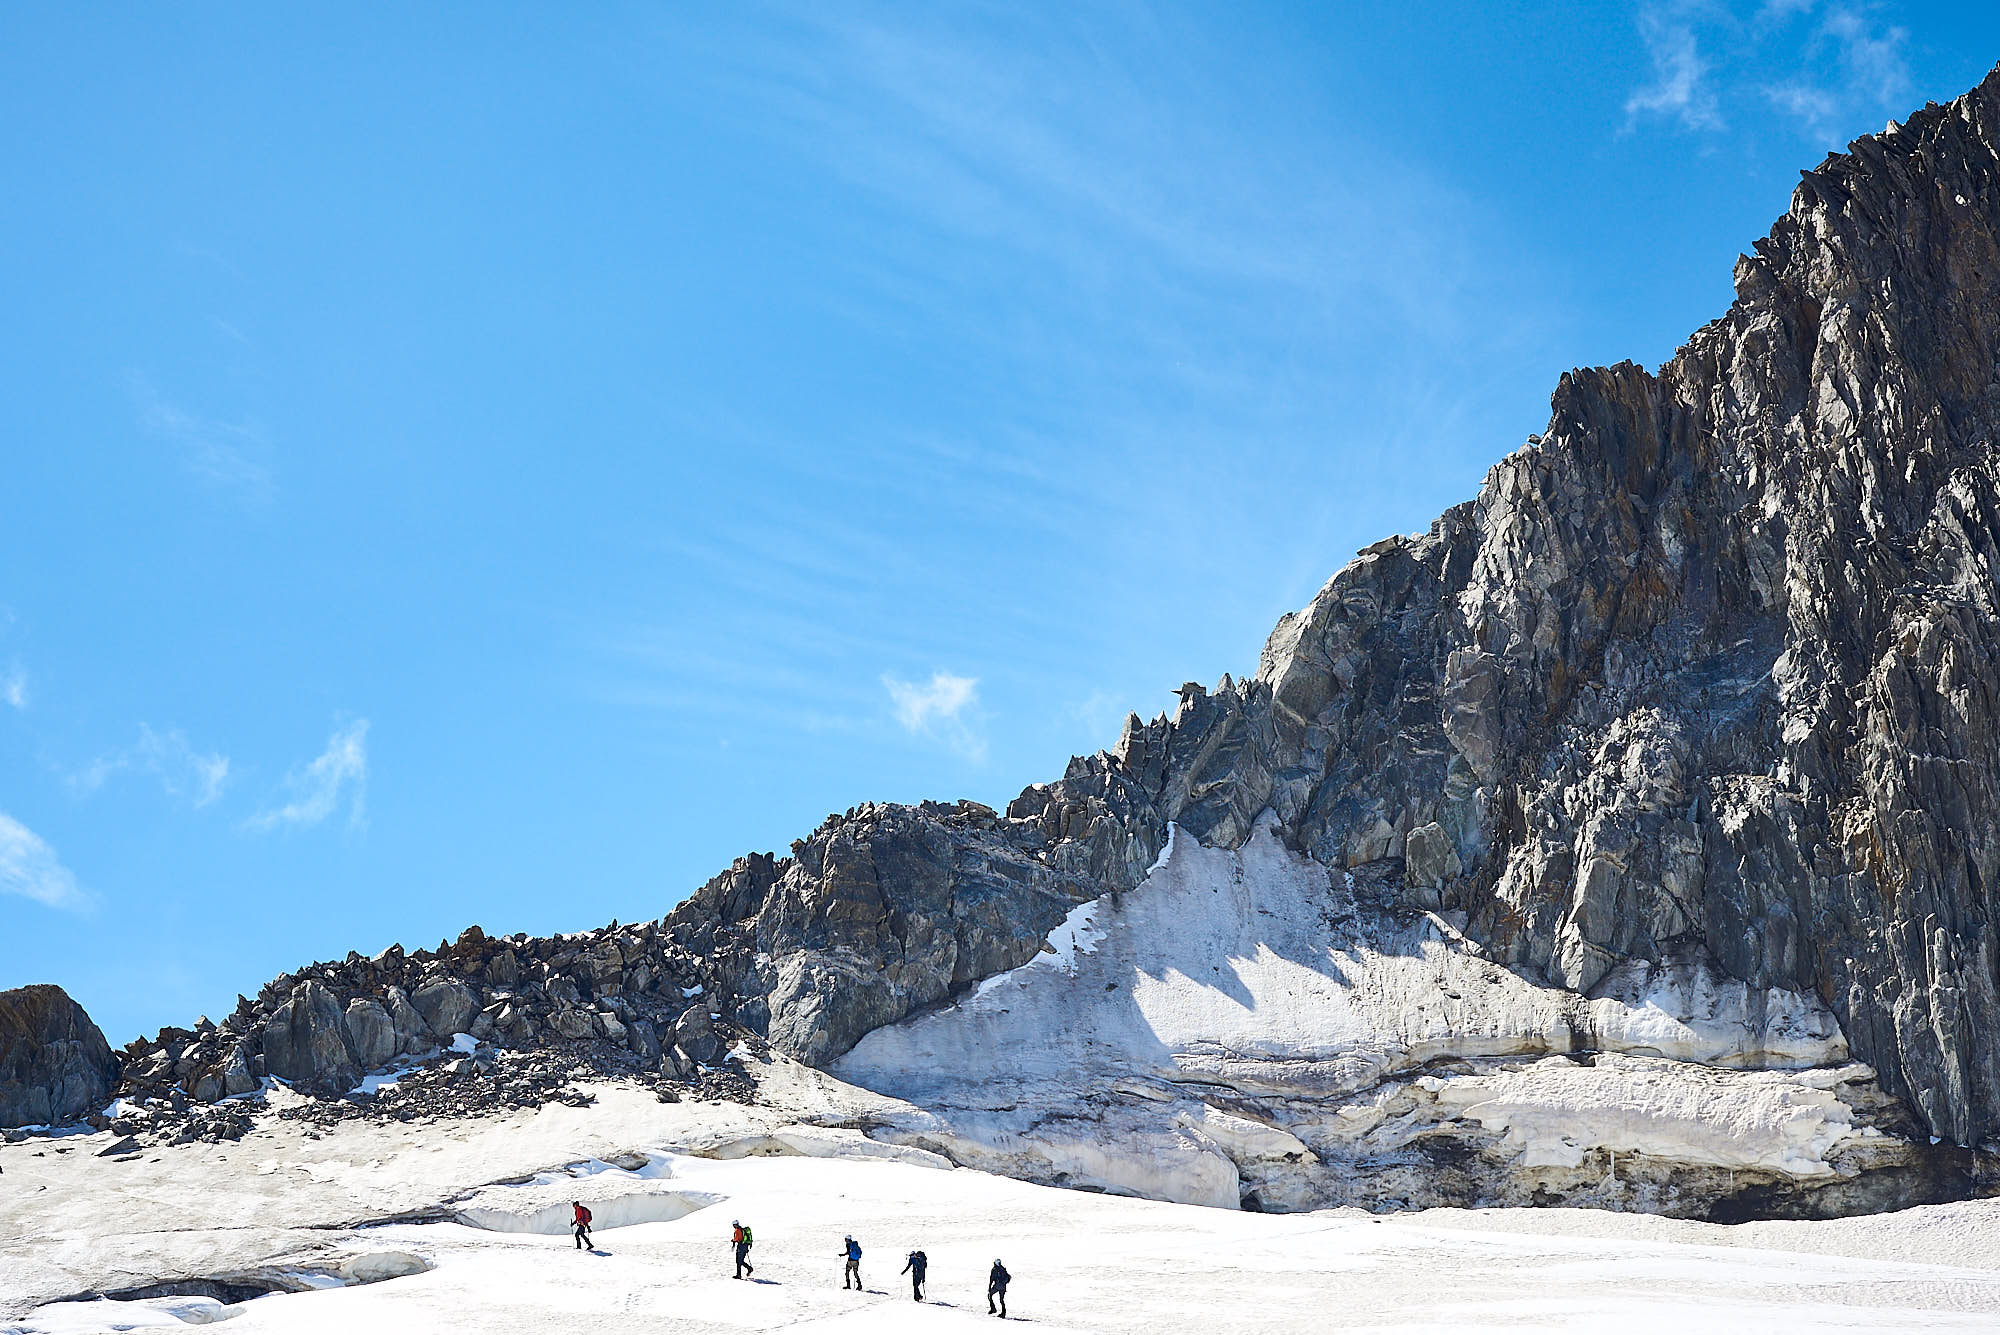 Mountaineers approaching a ridge in the Italian Alps